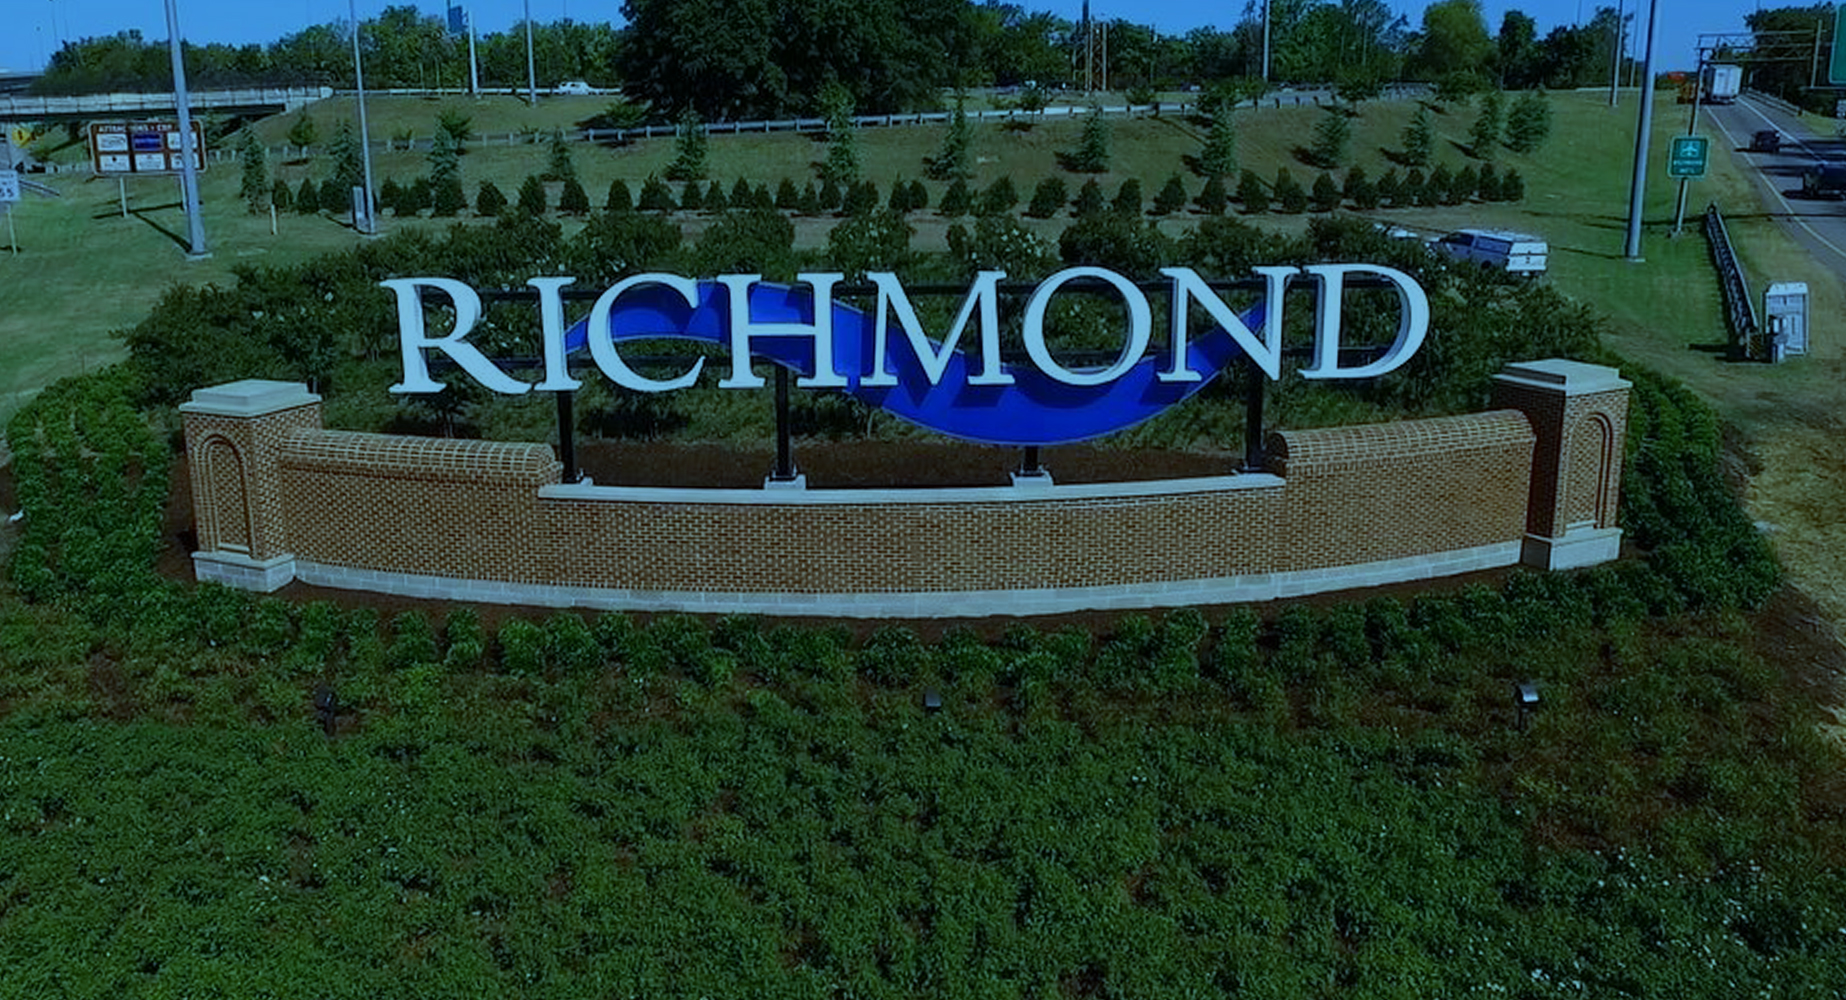 images//Richmond_sign_Central_West_Virginia_Professional_Certified_Company_Roanoke_Lynchburg.jpg